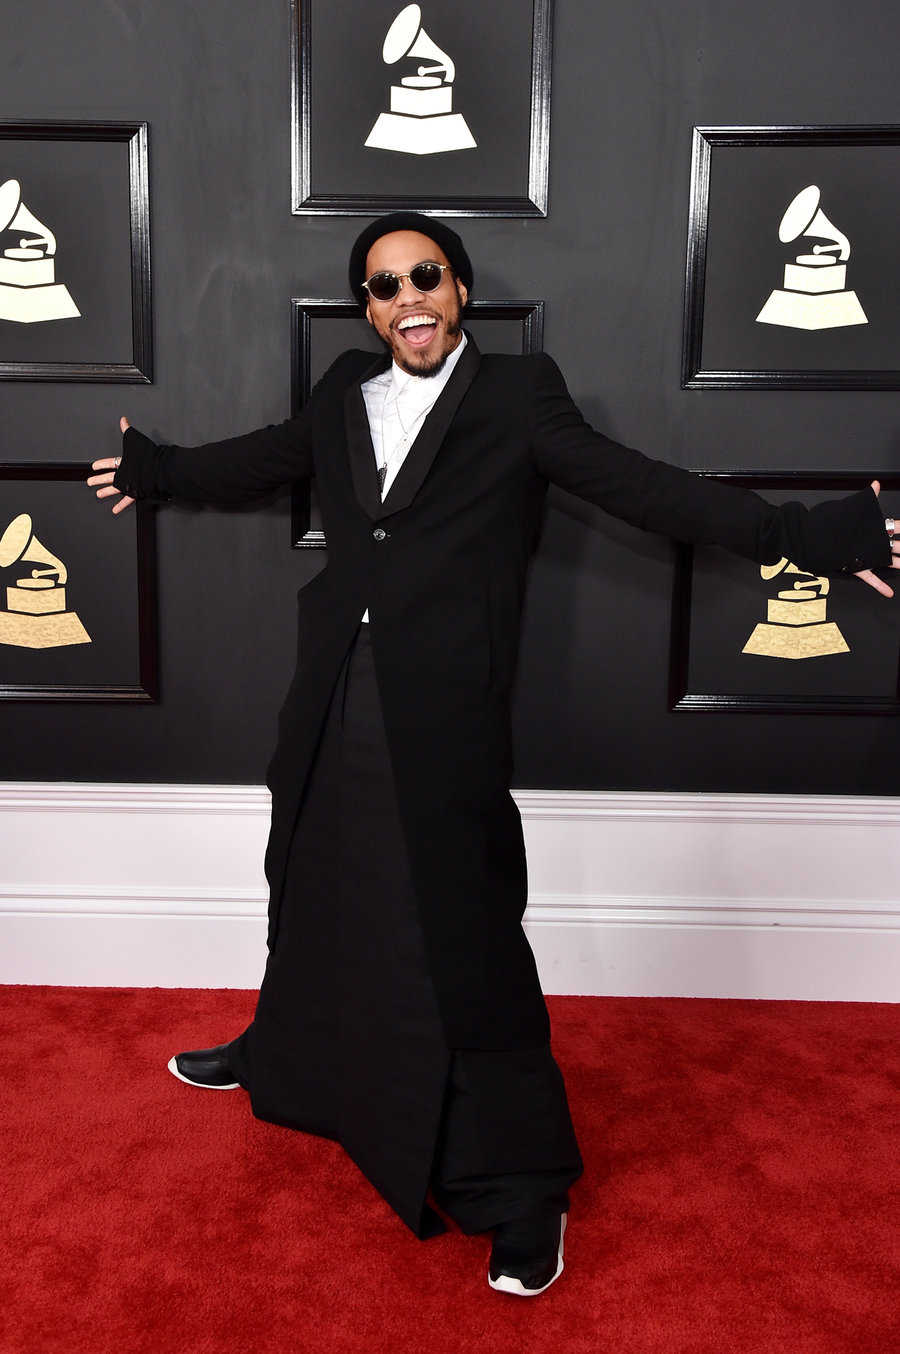 anderson-.paak-grammys-red-carpet-2017-billboard-1240.jpg